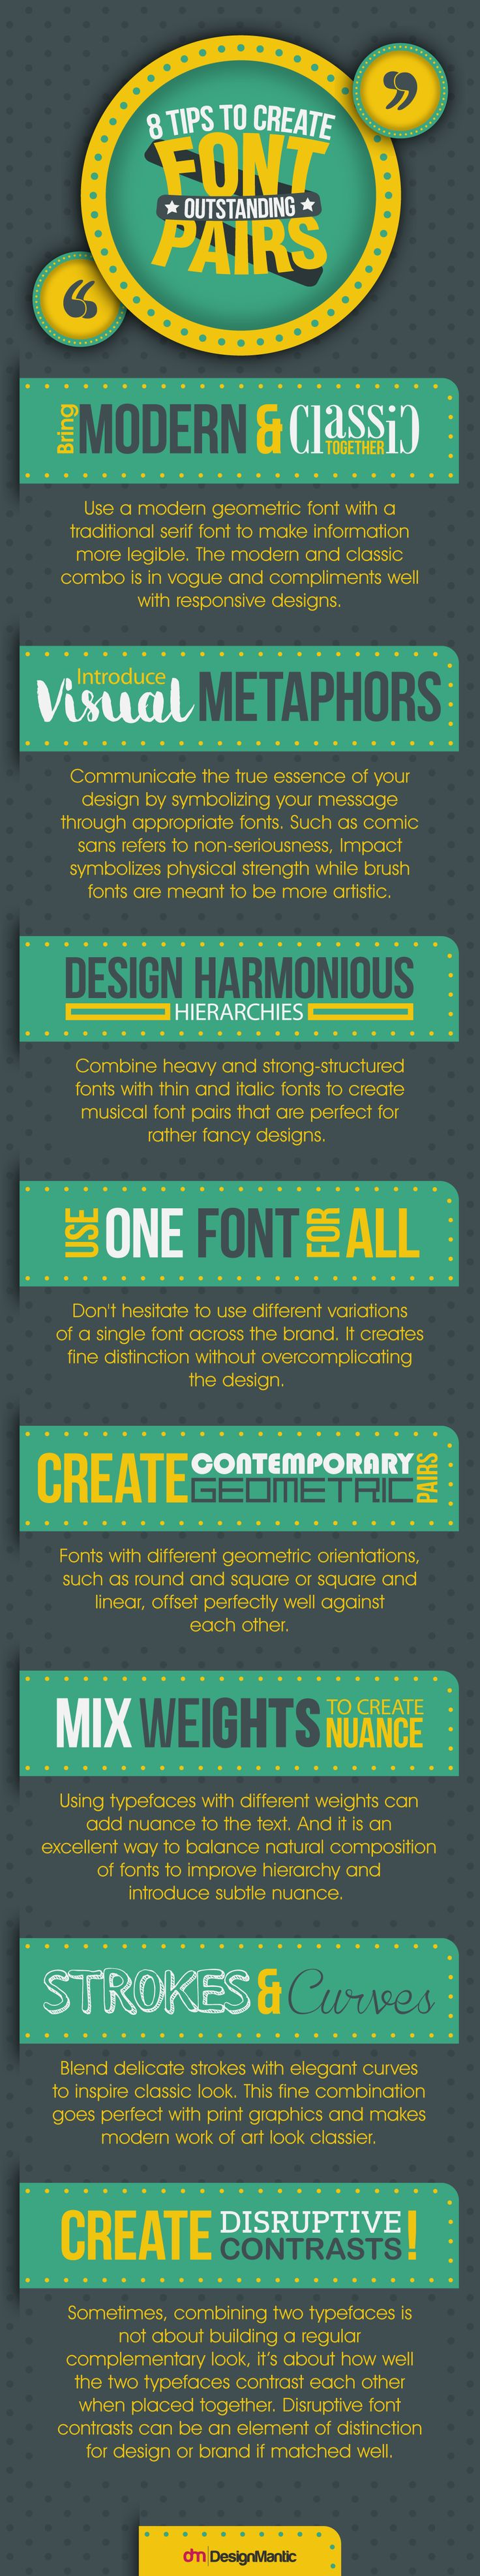 8 Cool Tips On How To Create Outstanding Font Pairs | Graphics Pedia